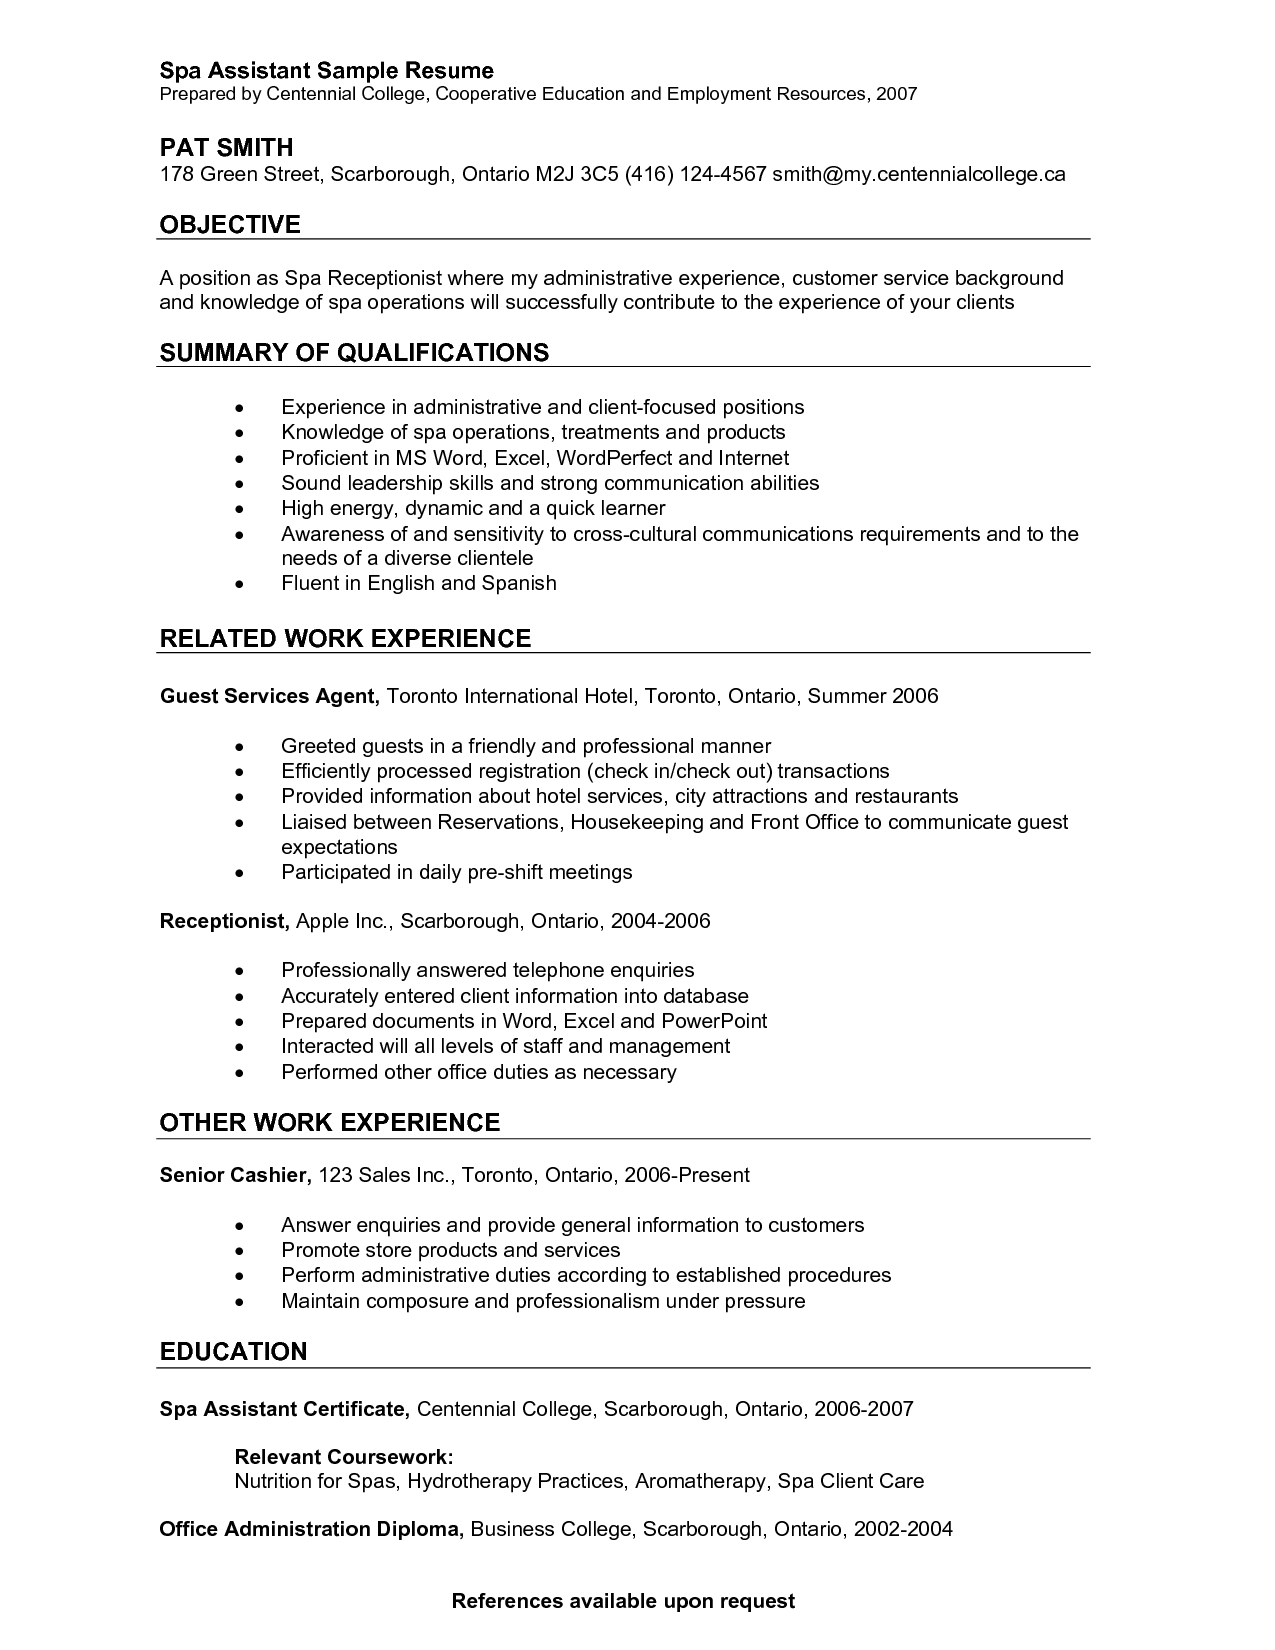 Medical Receptionist Resume Objective Samples resume Pinterest